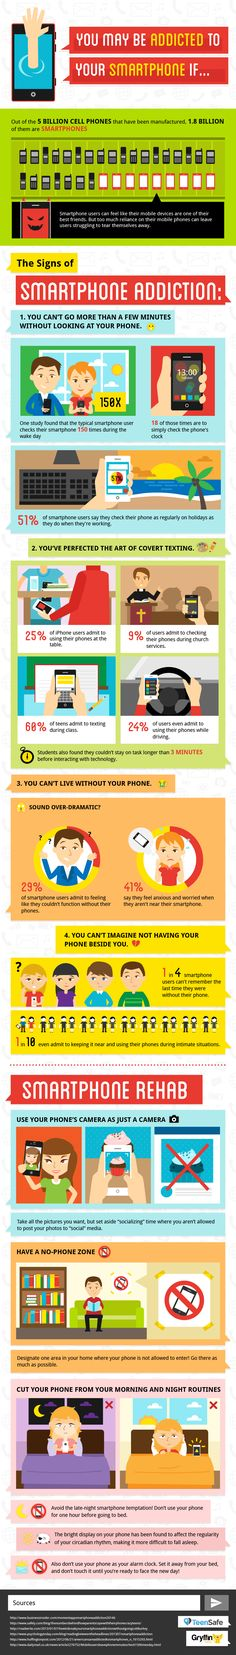 You May Be Addicted to Your Smartphone #infographic #Smartphone #MobileDevices